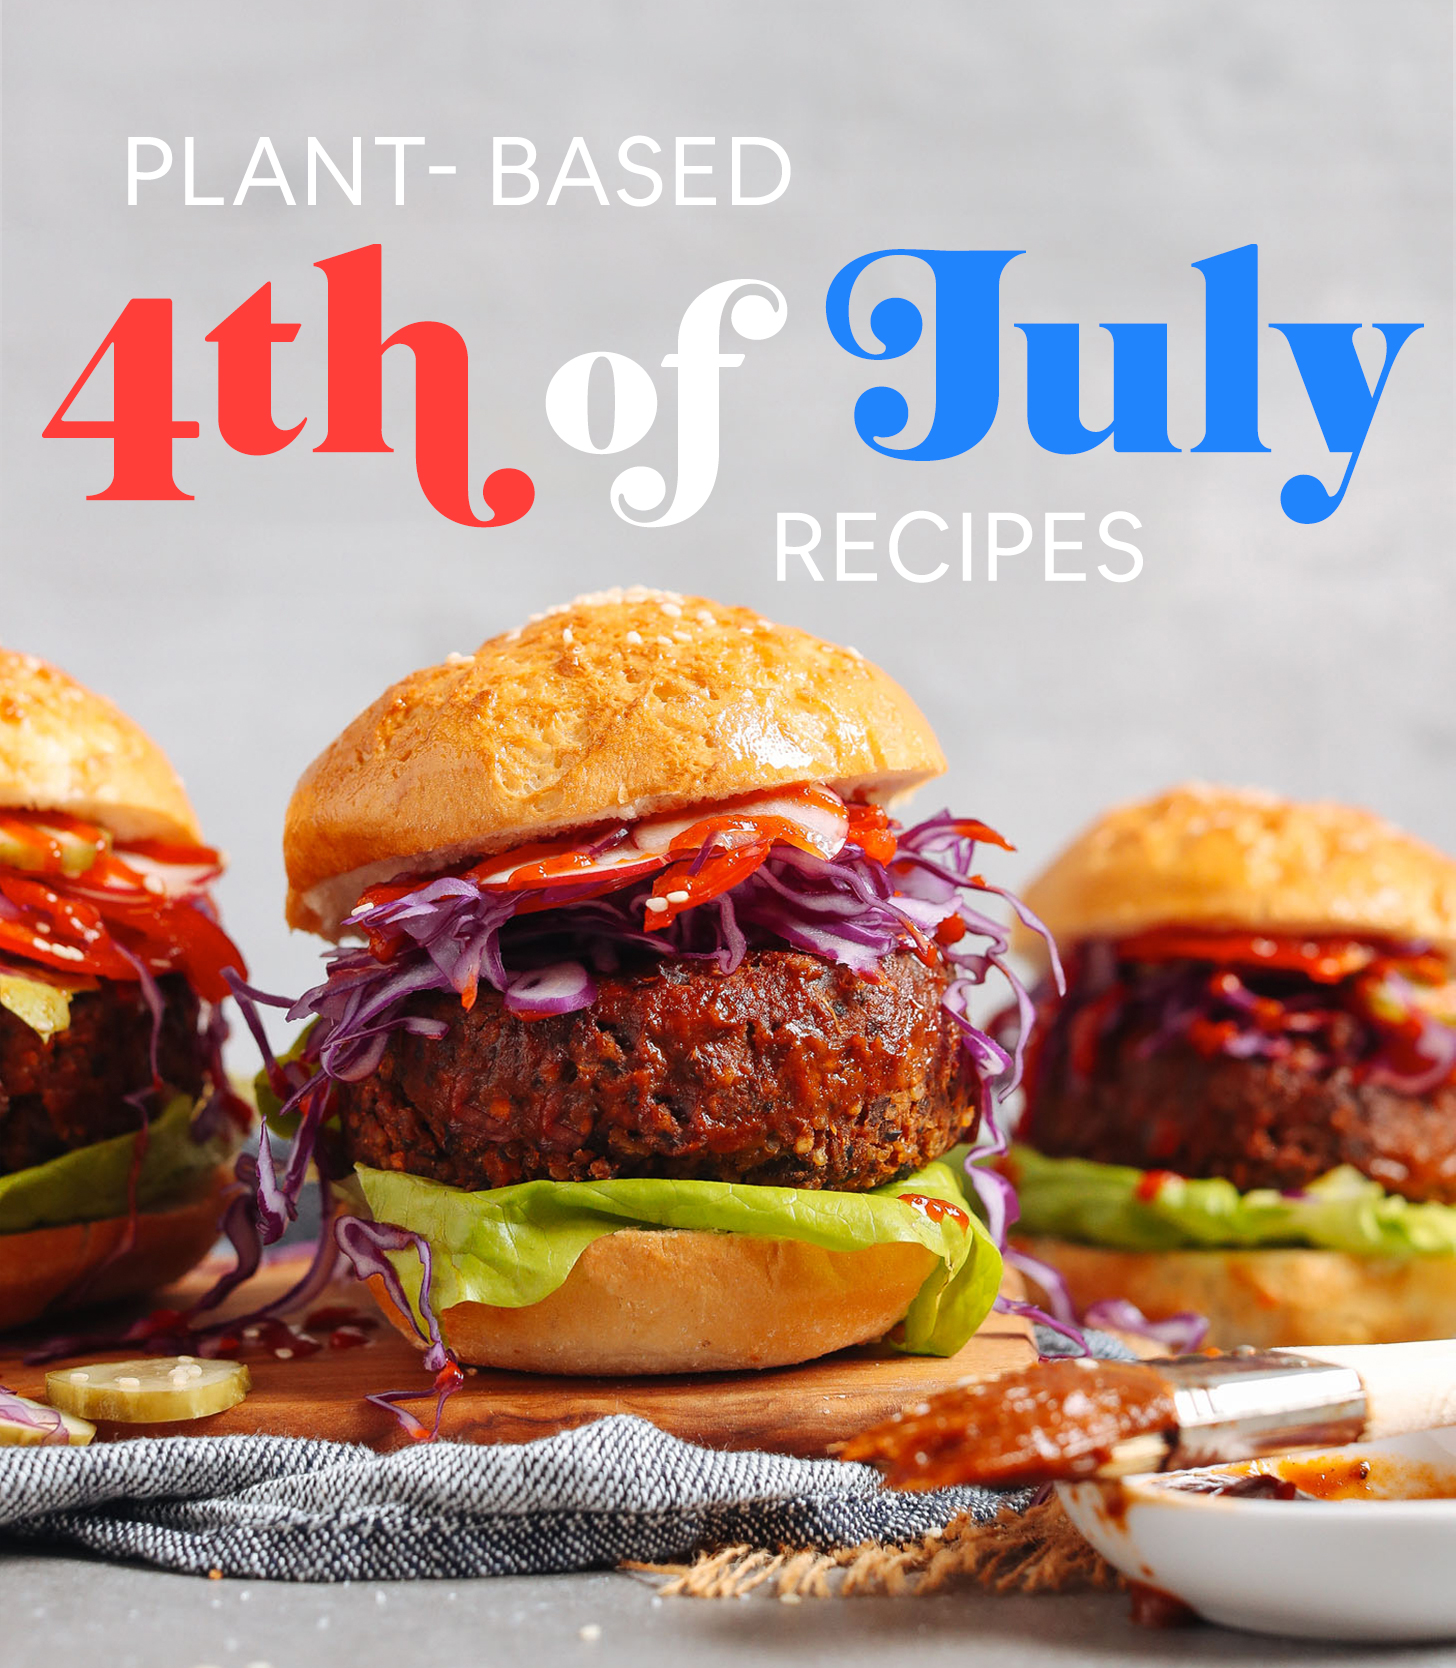 Photo of Smoky BBQ Black Bean Burgers overlaid with text saying Plant-Based 4th of July Recipes